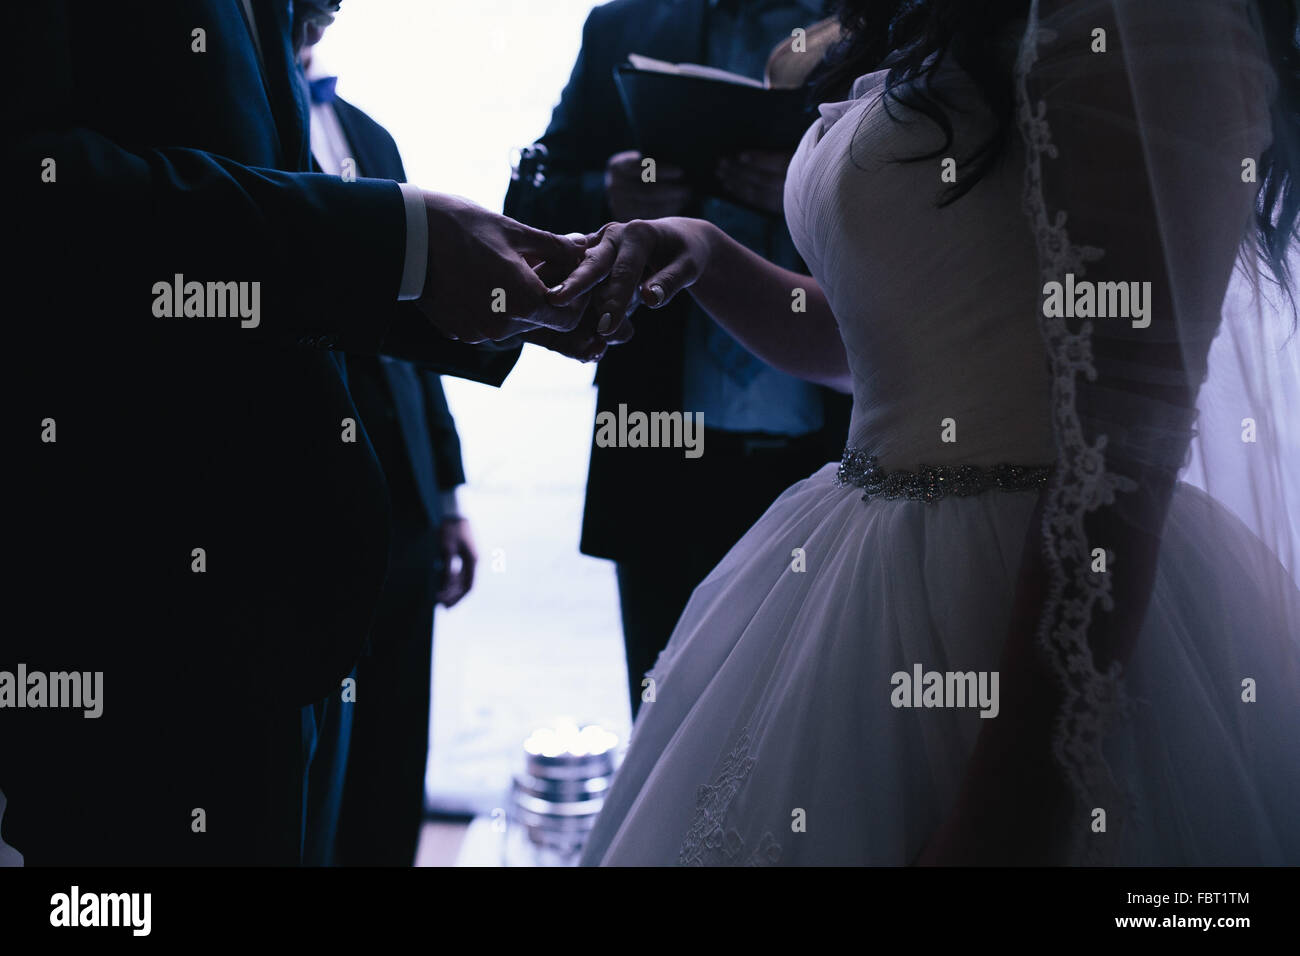 groom wears the ring bride - Stock Image